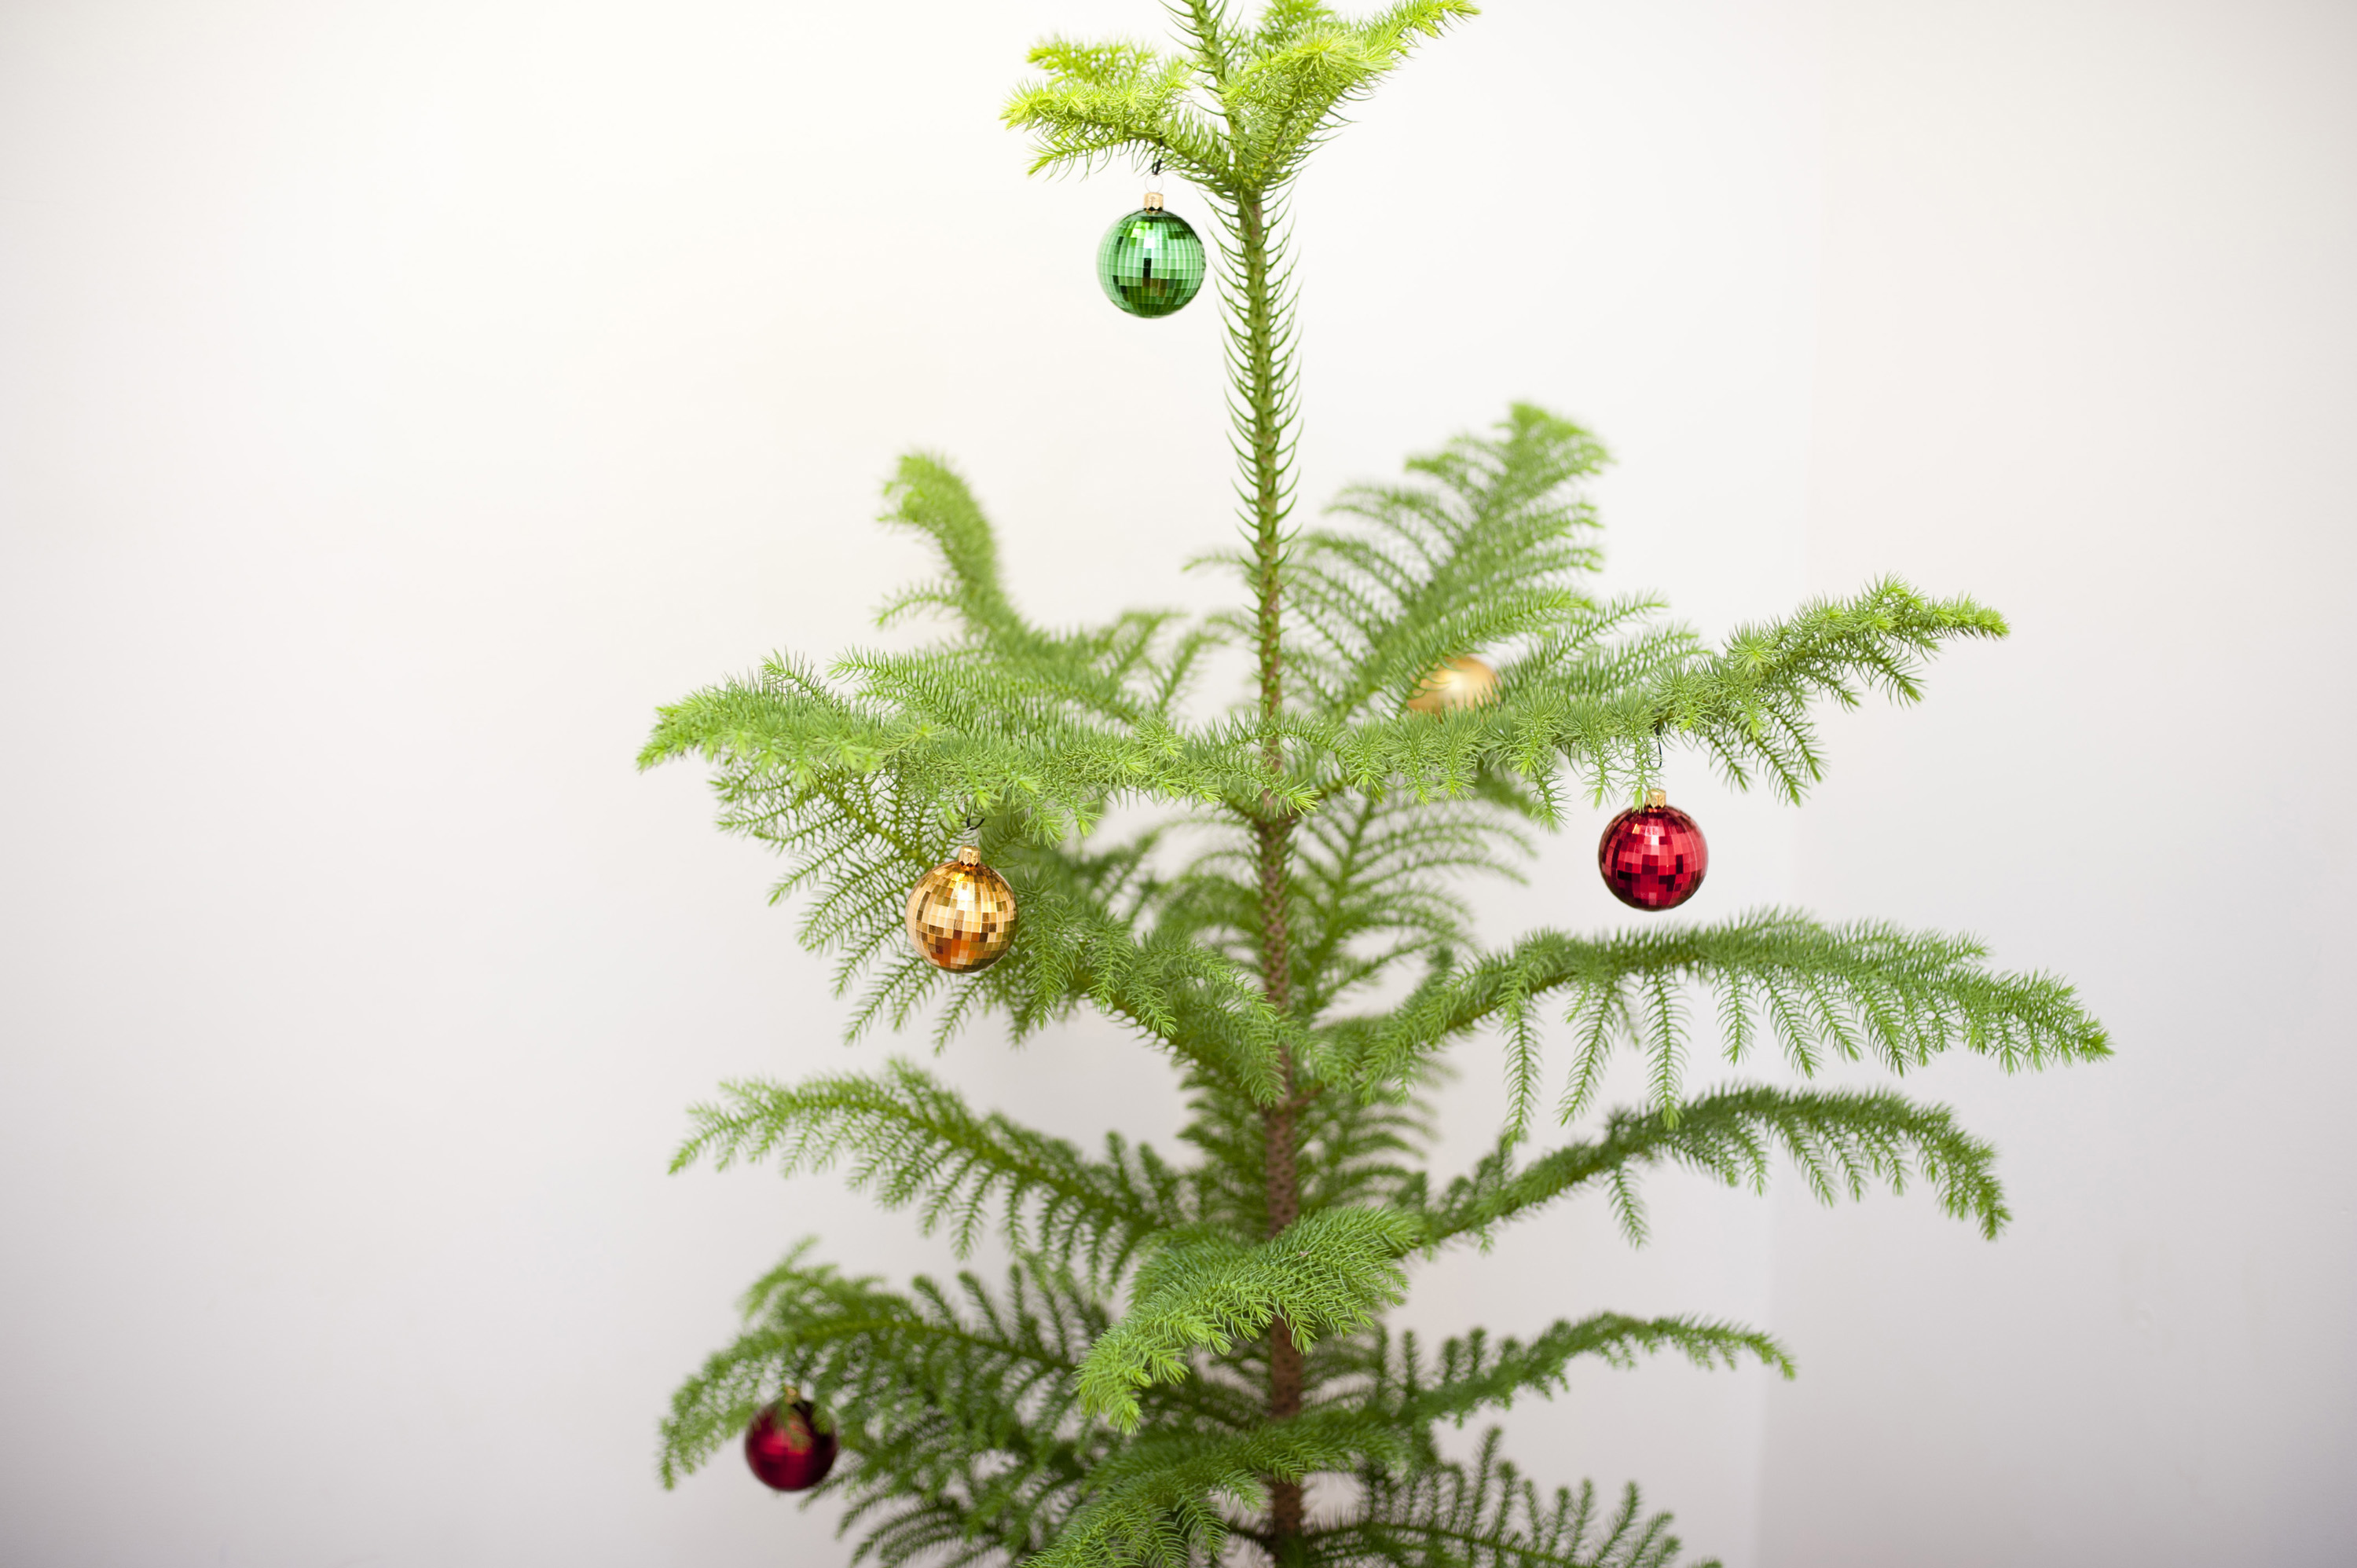 simple christmas decorations on a natural evergreen pine tree with colourful baubles hanging on the dainty